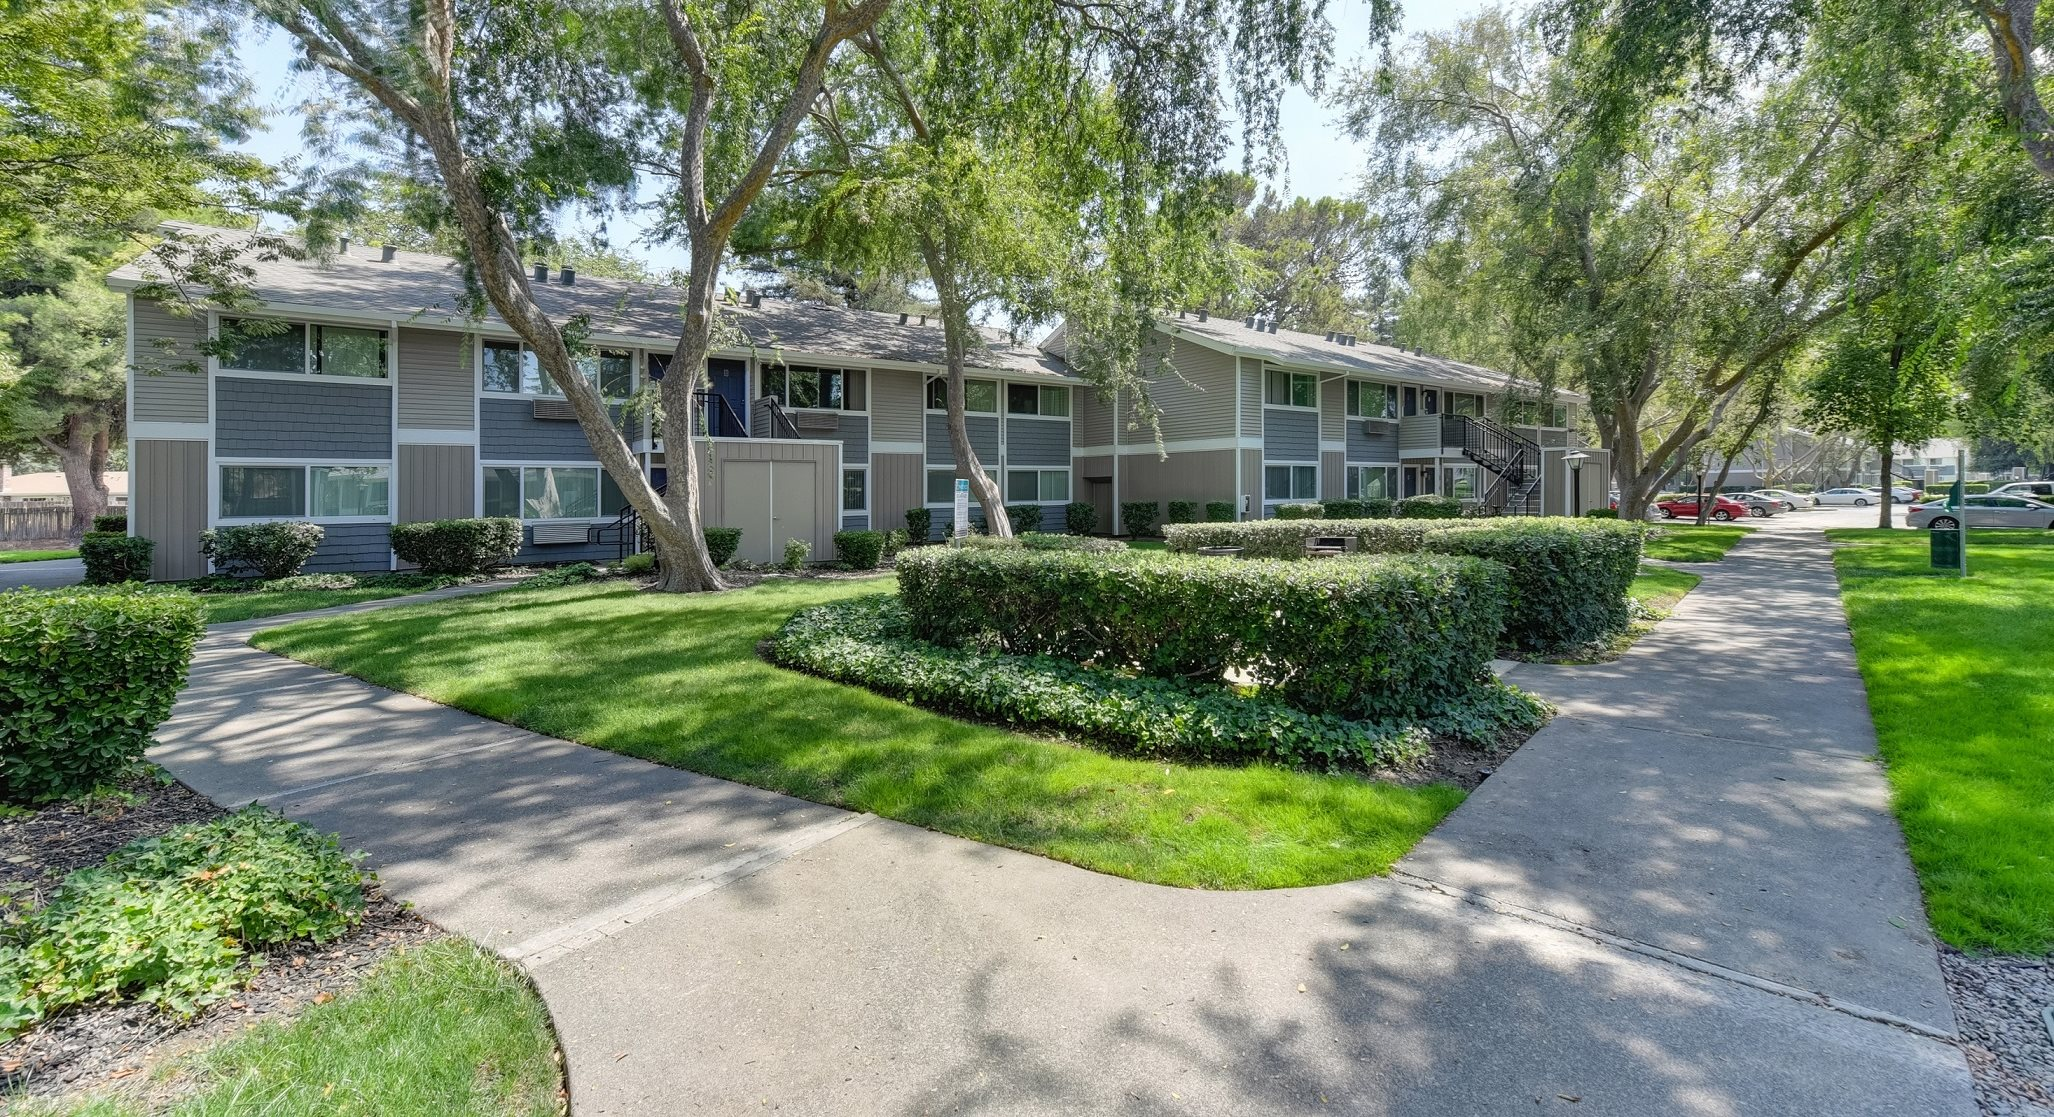 Apartment Grounds Exterior with Walking Paths, Grass and Trees